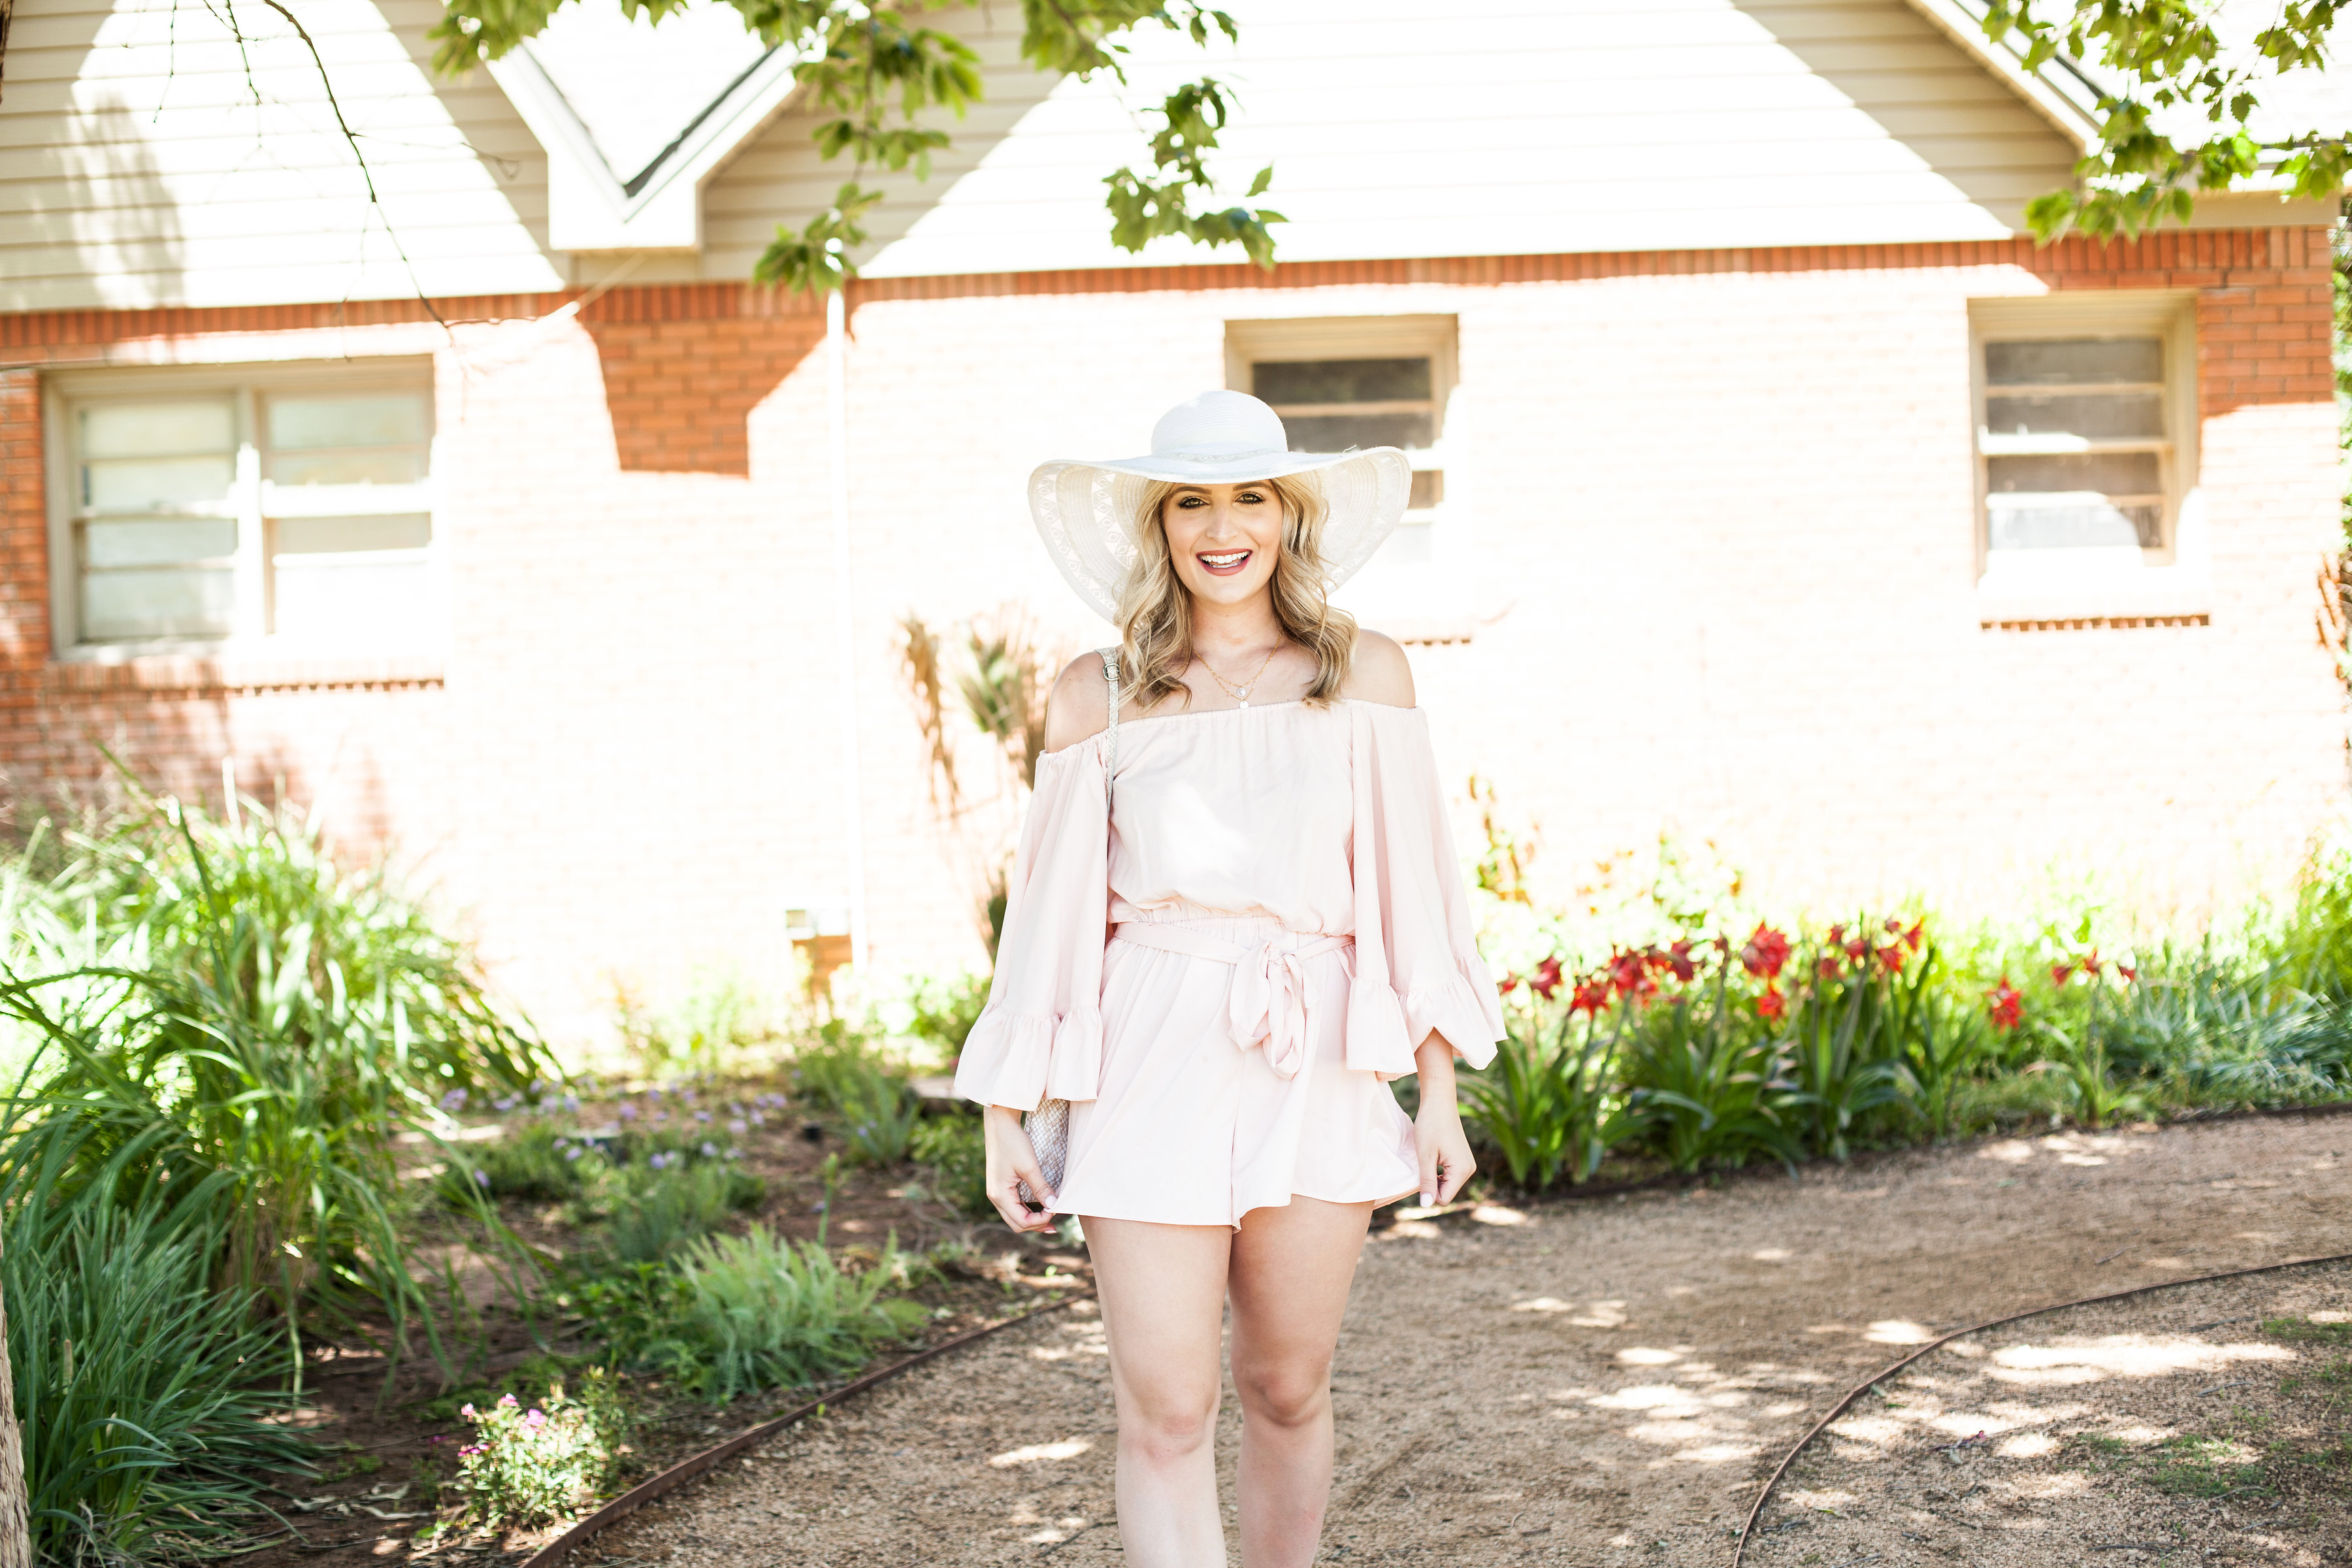 10 Summer Must-Have Wardrobe Pieces You Need This Summer by lifestyle and fashion blogger Audrey Madison Stowe based in Texas